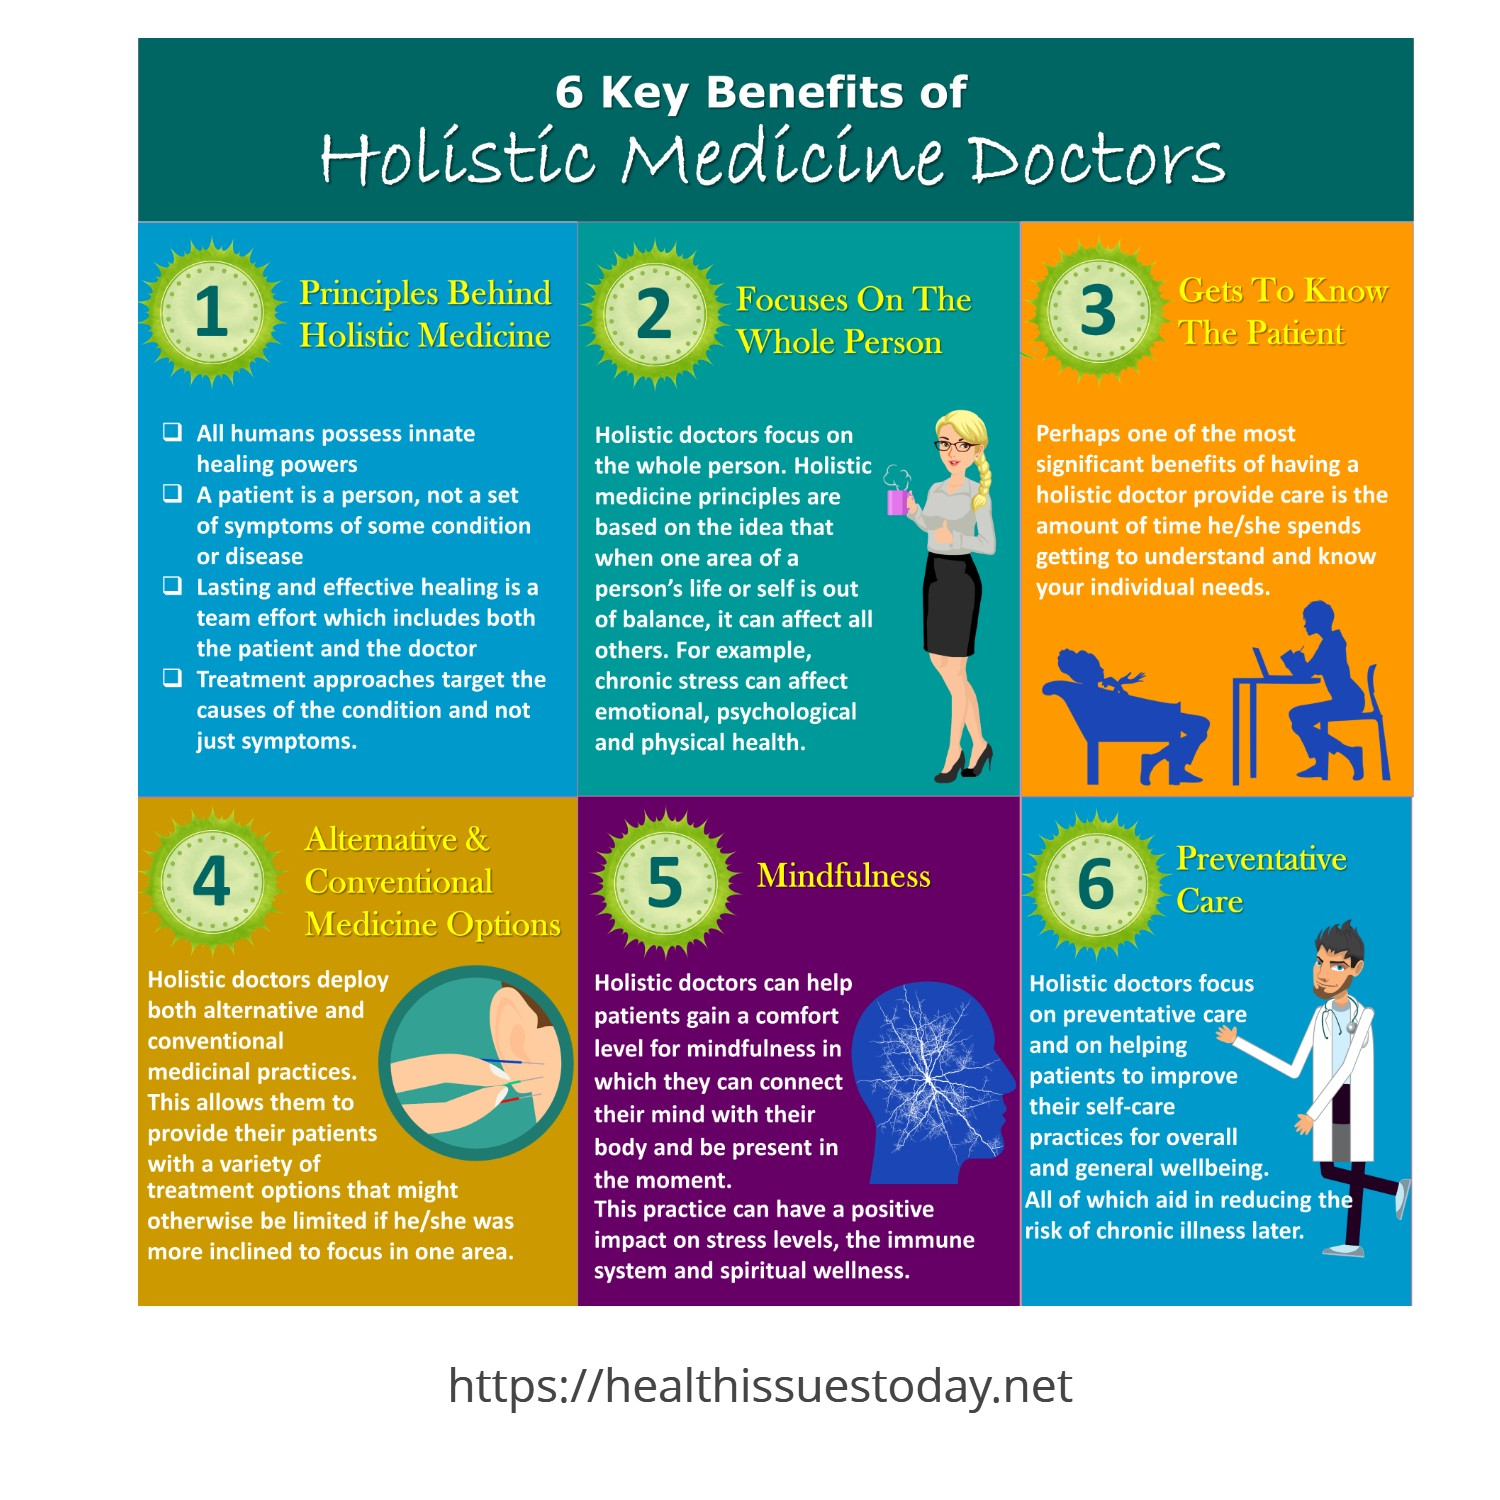 Key benefits of Holistic Medicine Doctors